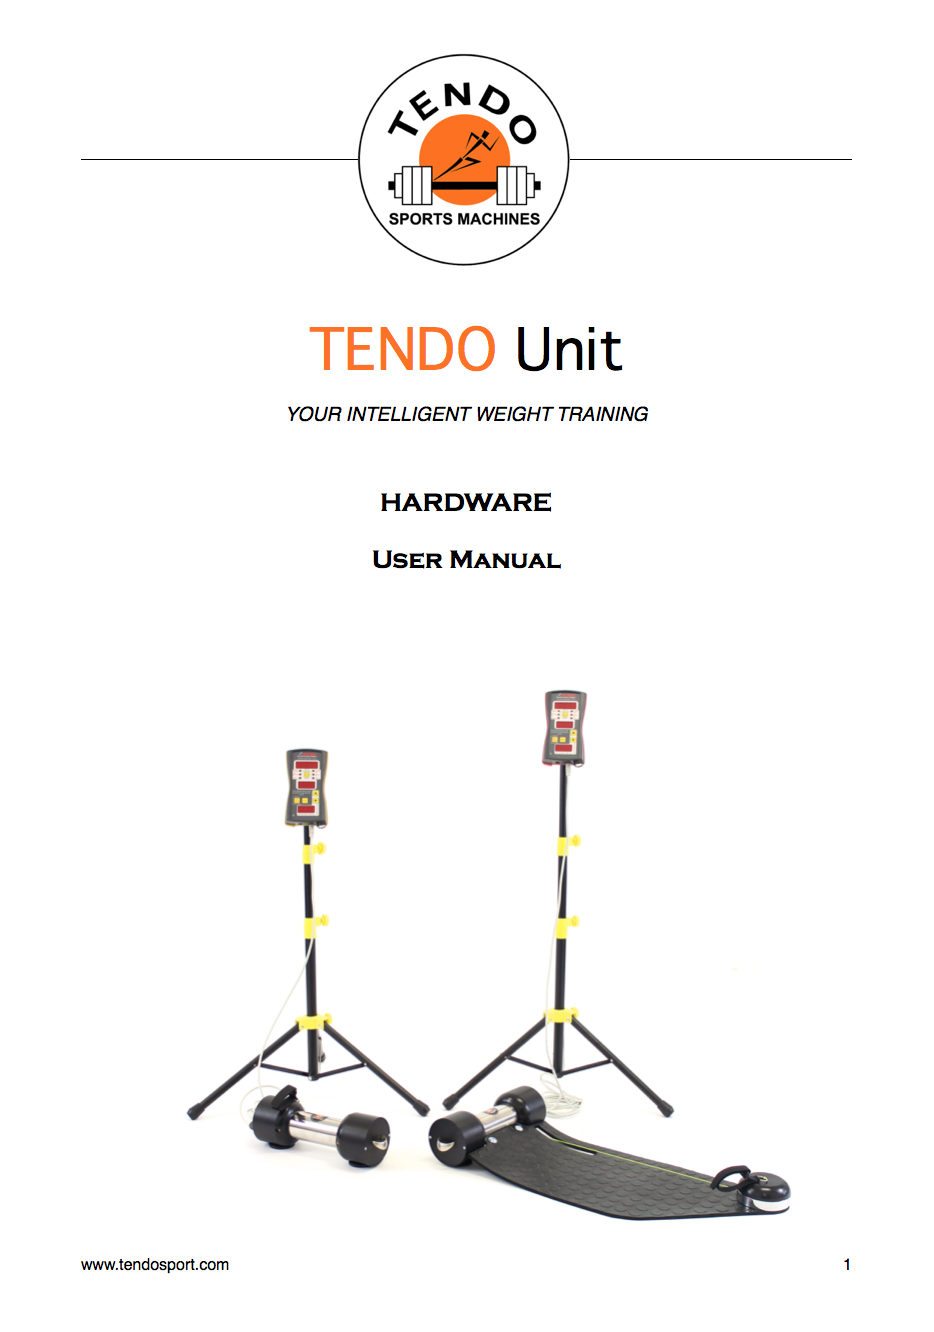 Tendo Unit hardware manual cover